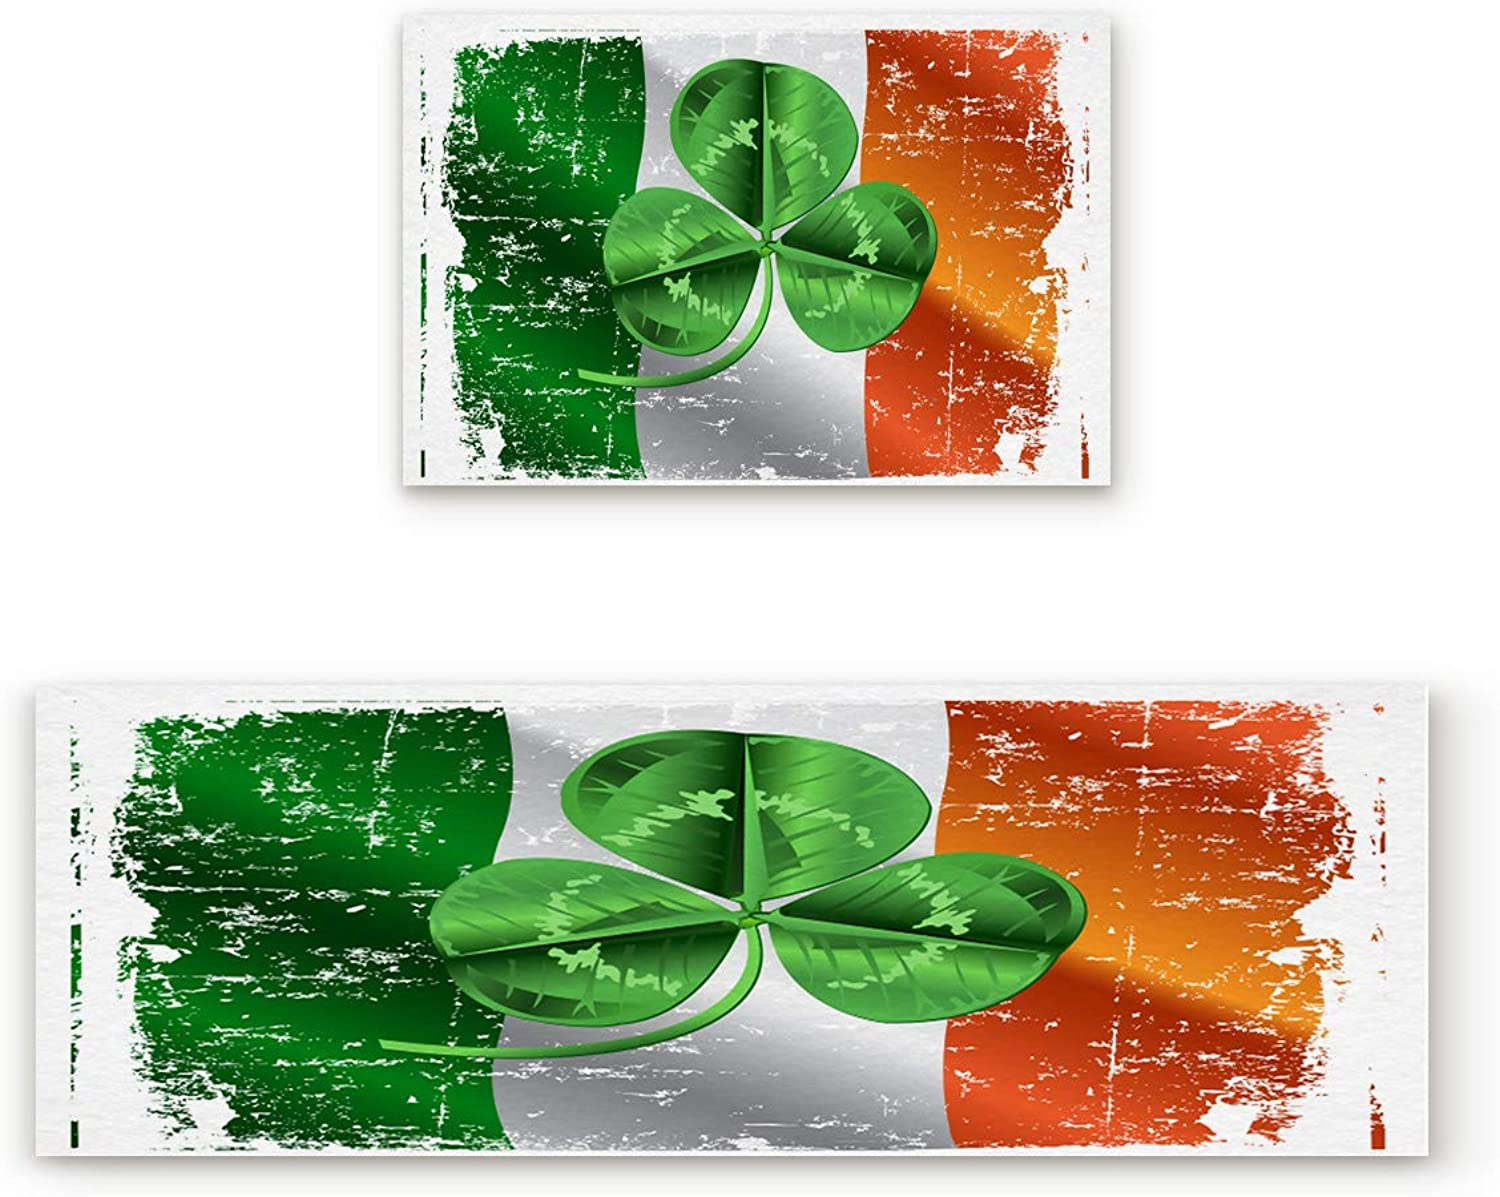 Aomike 2 Piece Non-Slip Kitchen Mat Rubber Backing Doormat Vintage Ireland Flag and Shamrock Pattern Runner Rug Set, Hallway Living Room Balcony Bathroom Carpet Sets (19.7  x 31.5 +19.7  x 63 )